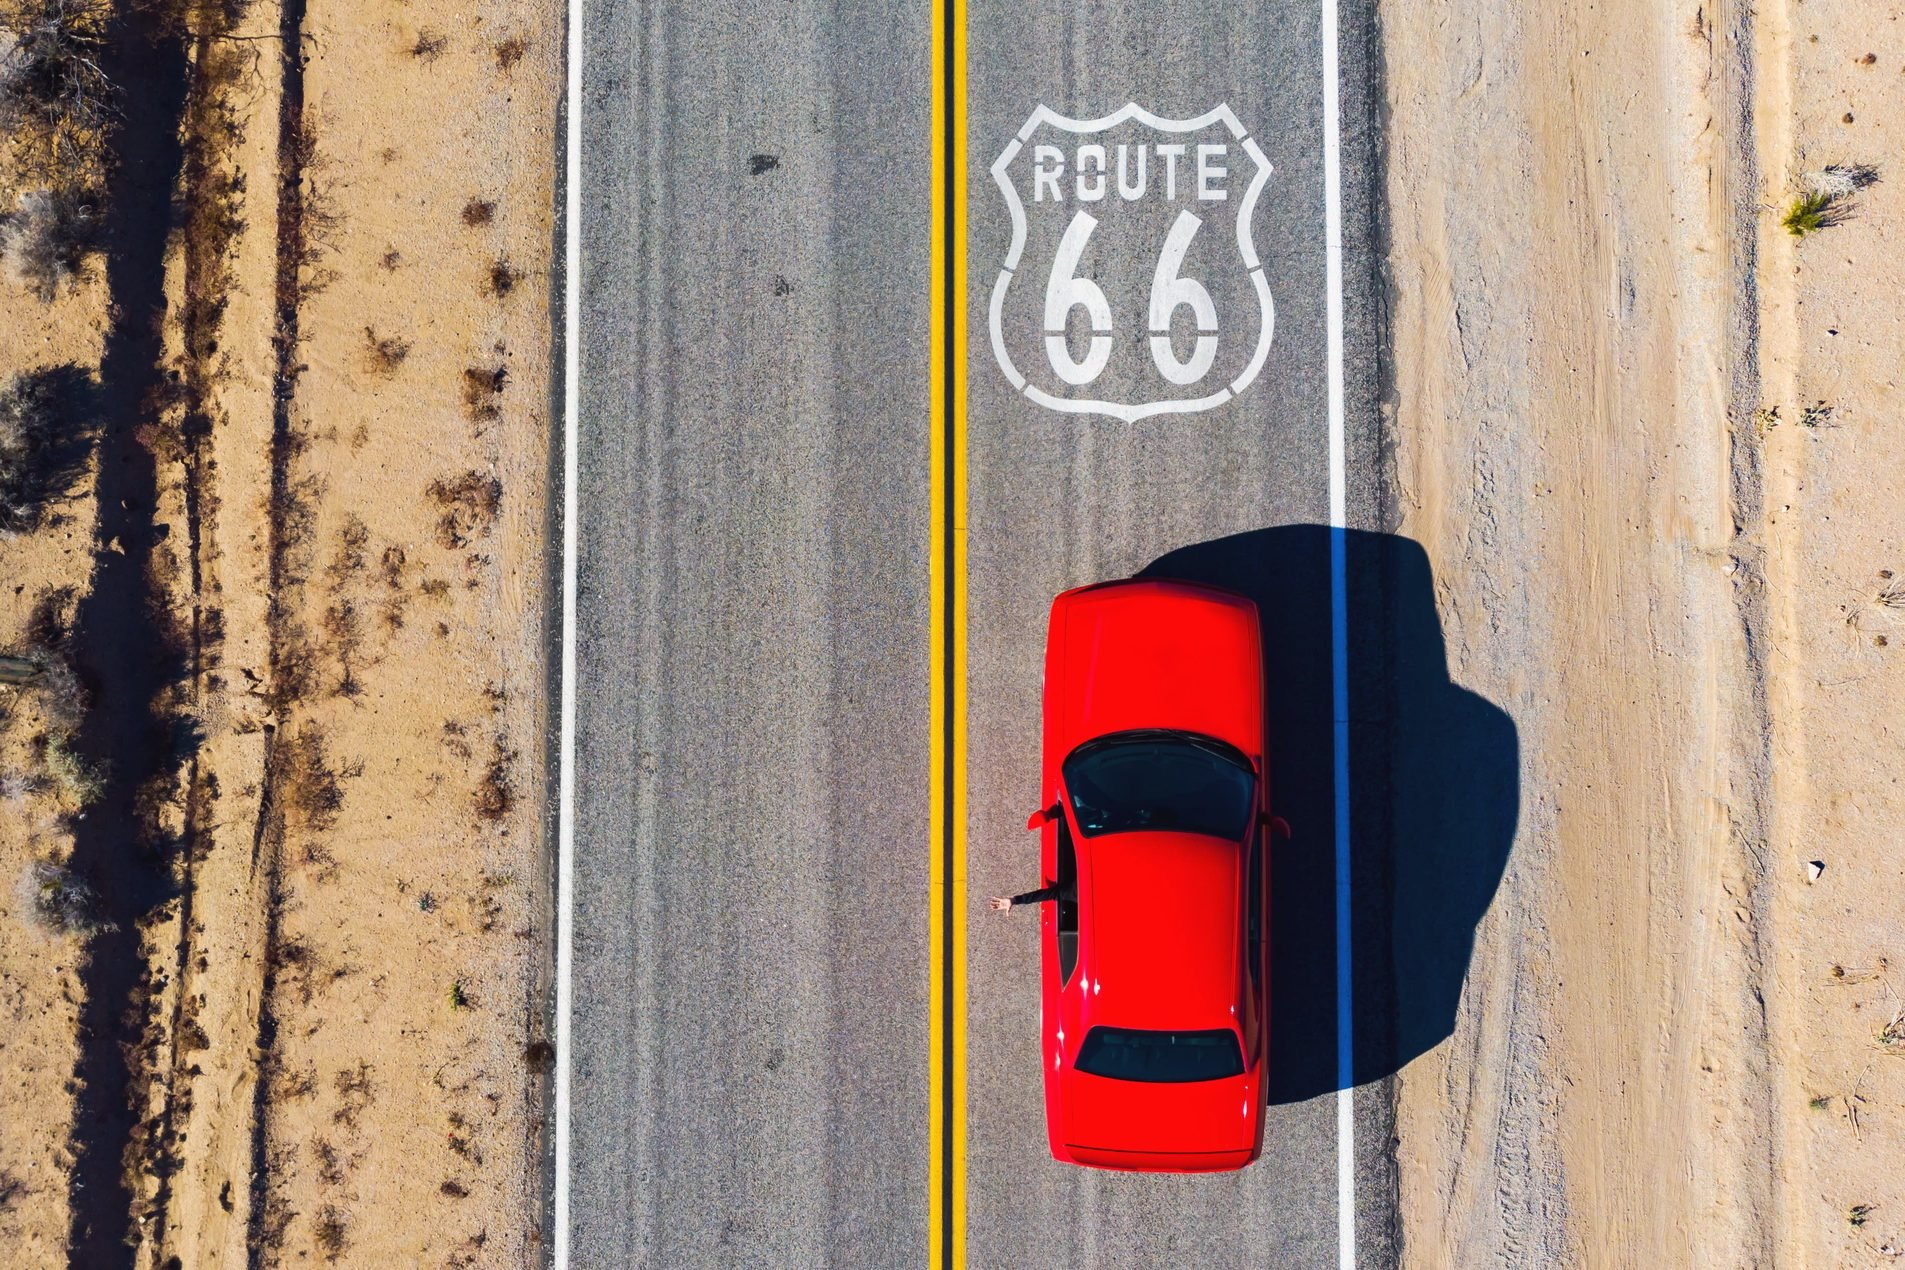 Drone view of American car driving in a straight road of the famous Route 66.